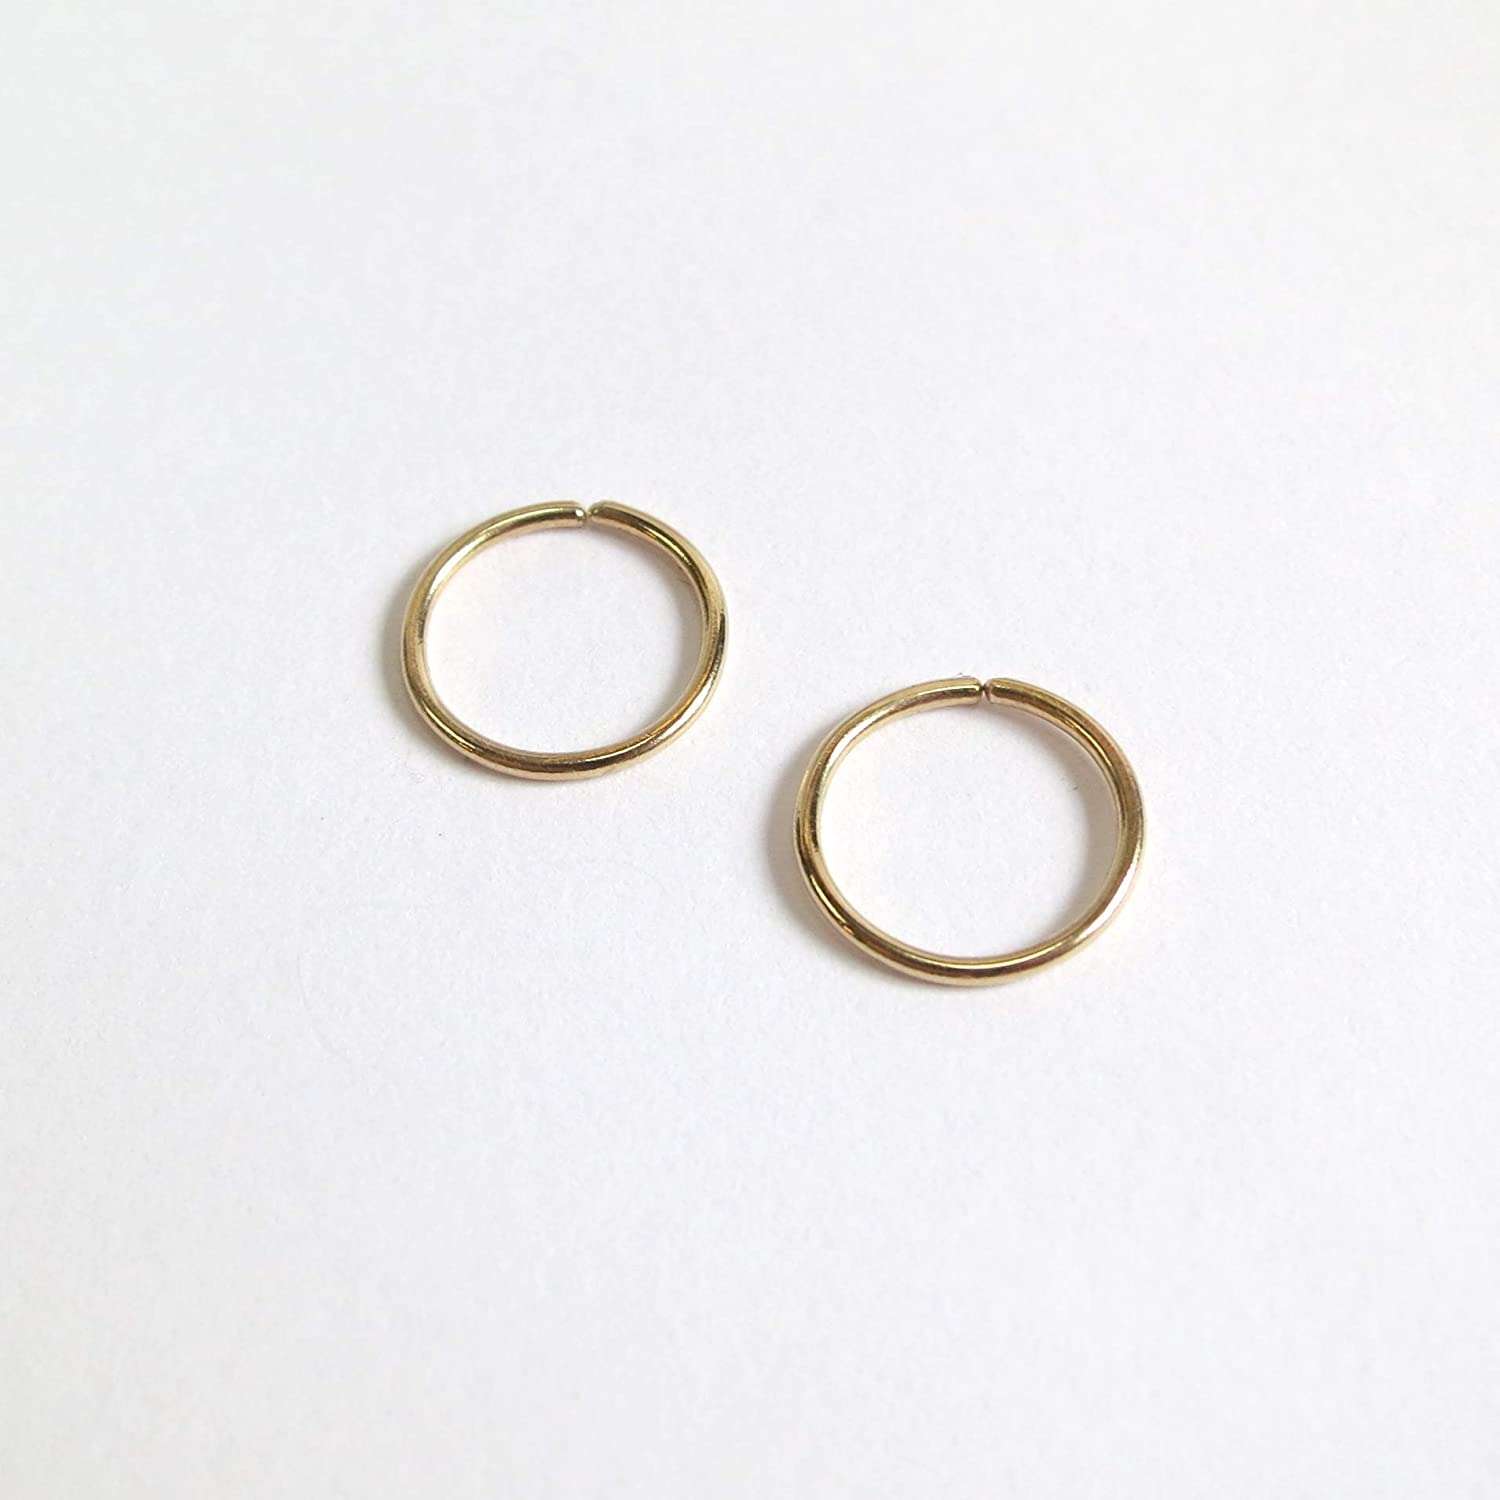 Lip Small 9ct Gold Hoop Earrings Eyebrow PAIR 8mm Sleepers 9k Solid Gold Continuous Hoops Nose Ring Cartilage